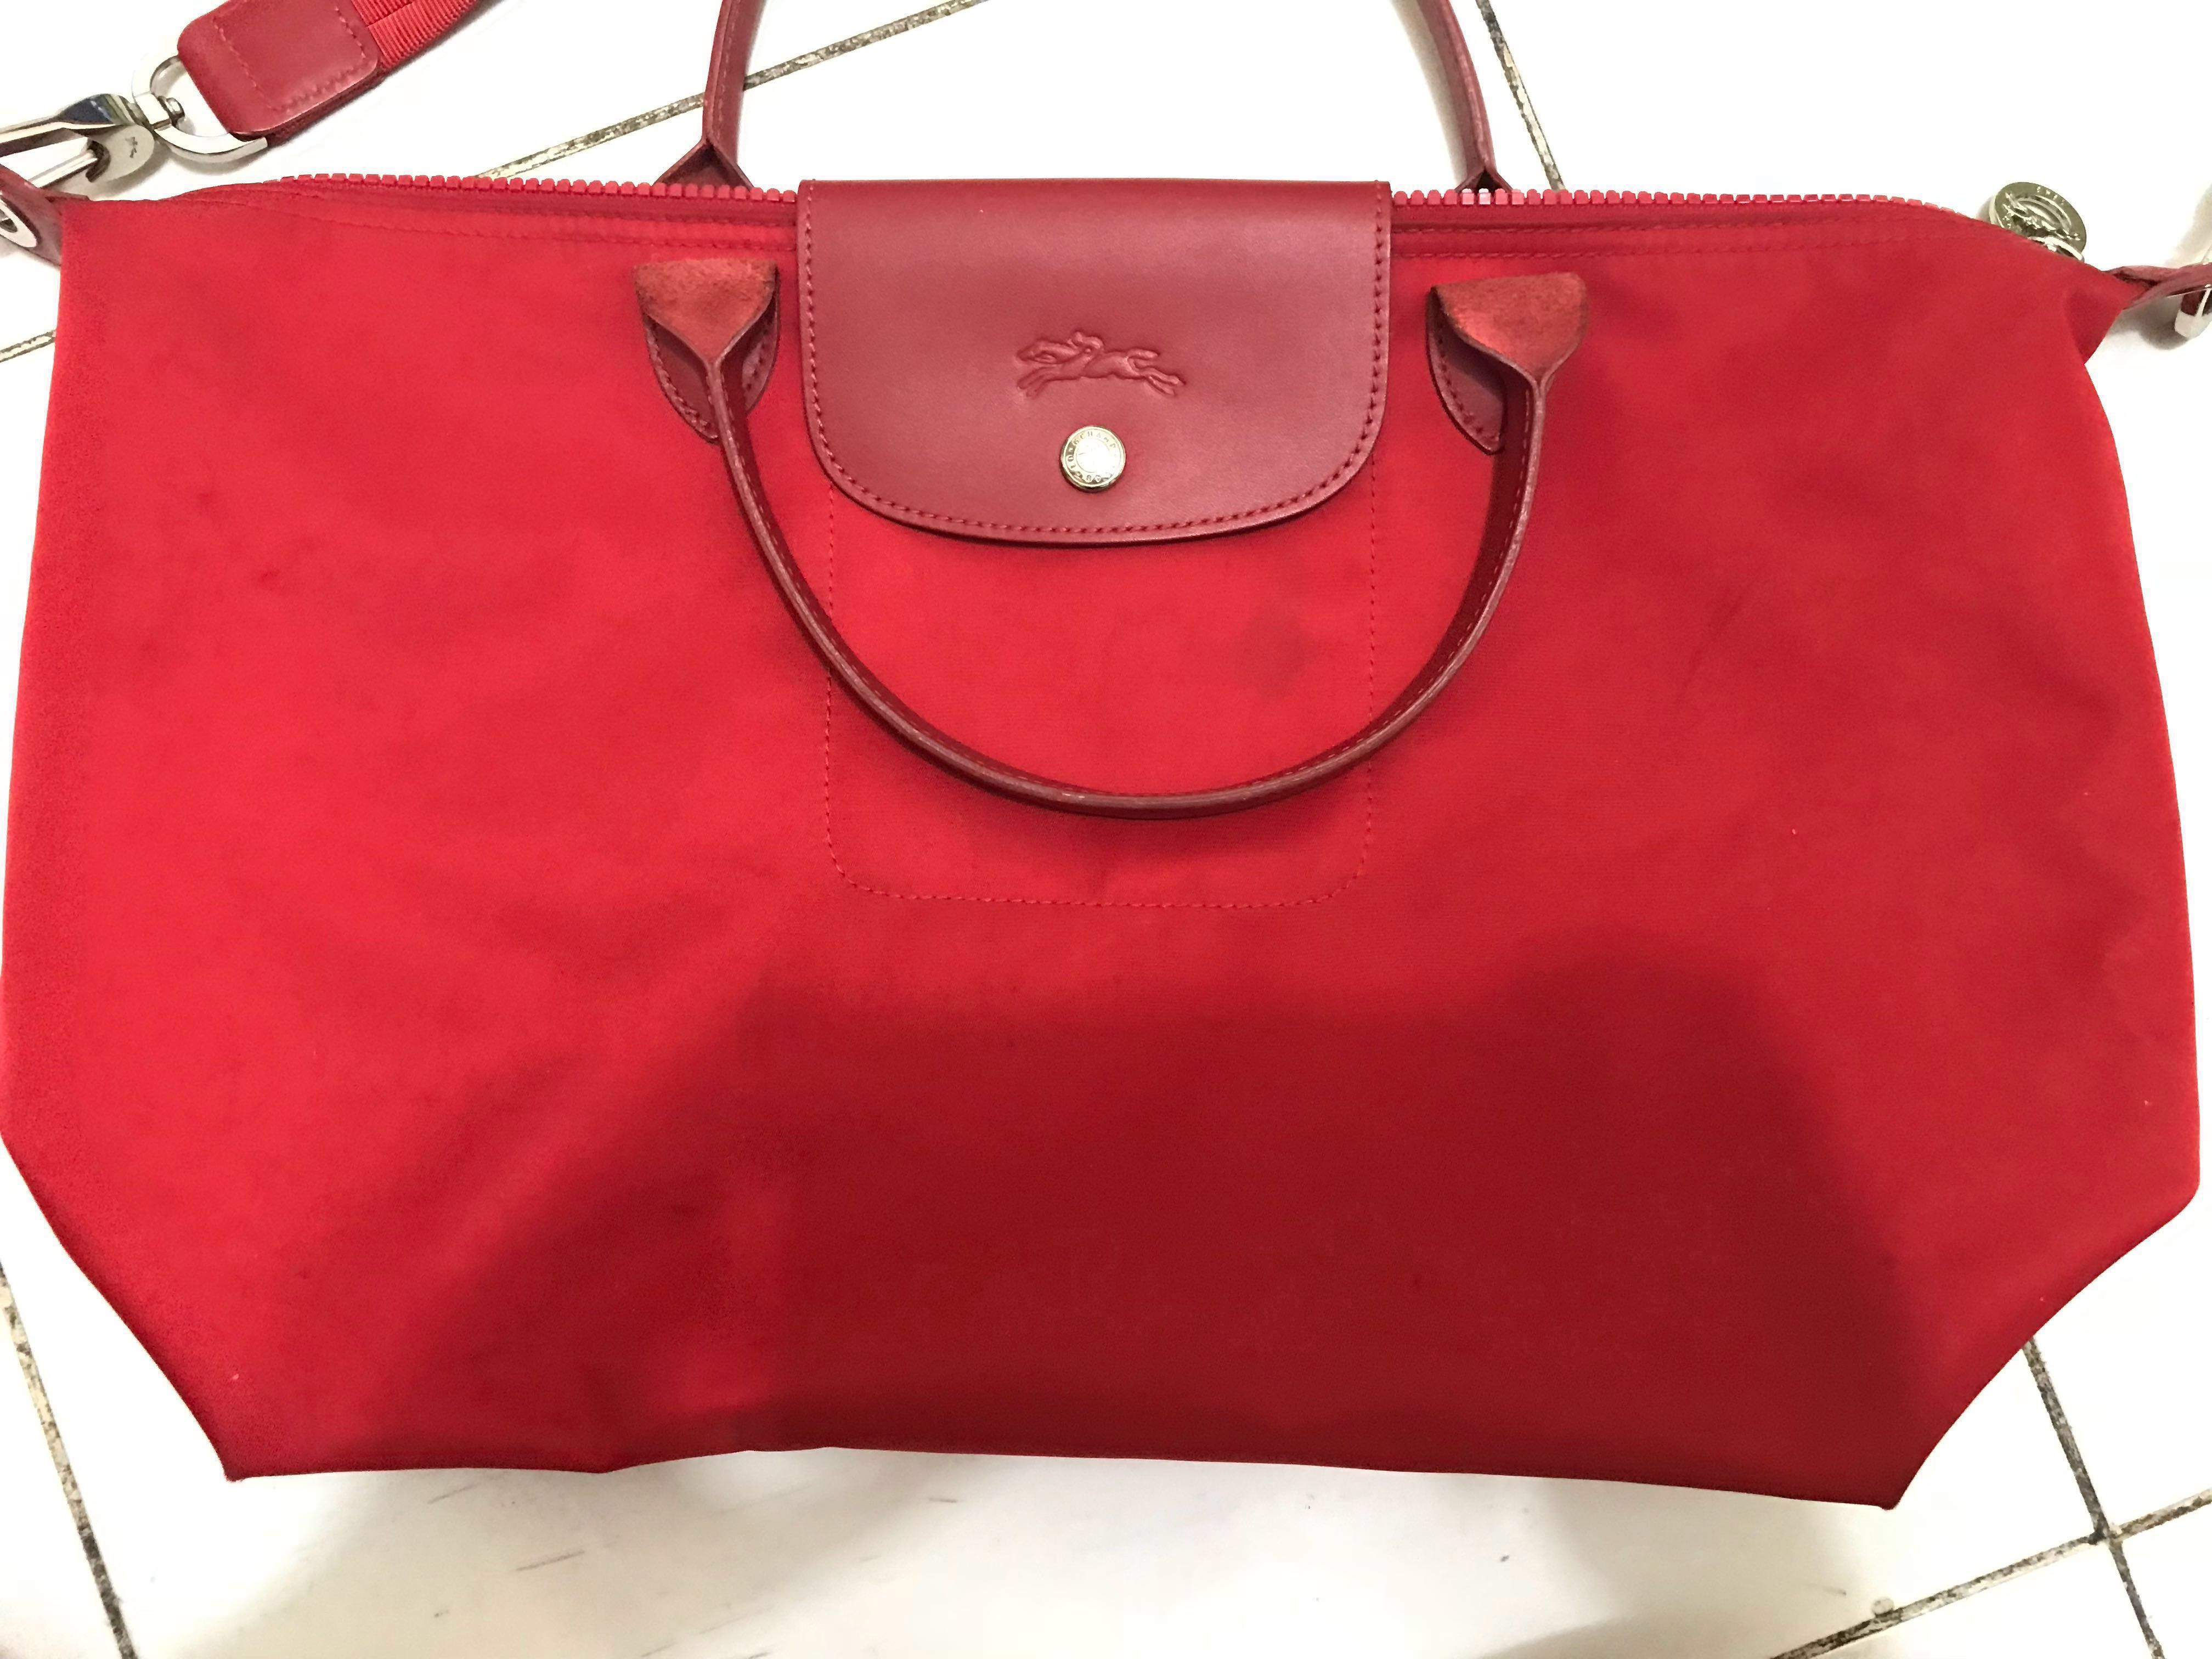 Longchamp Original Le Pliage Neo in Red size Large 5991434abf